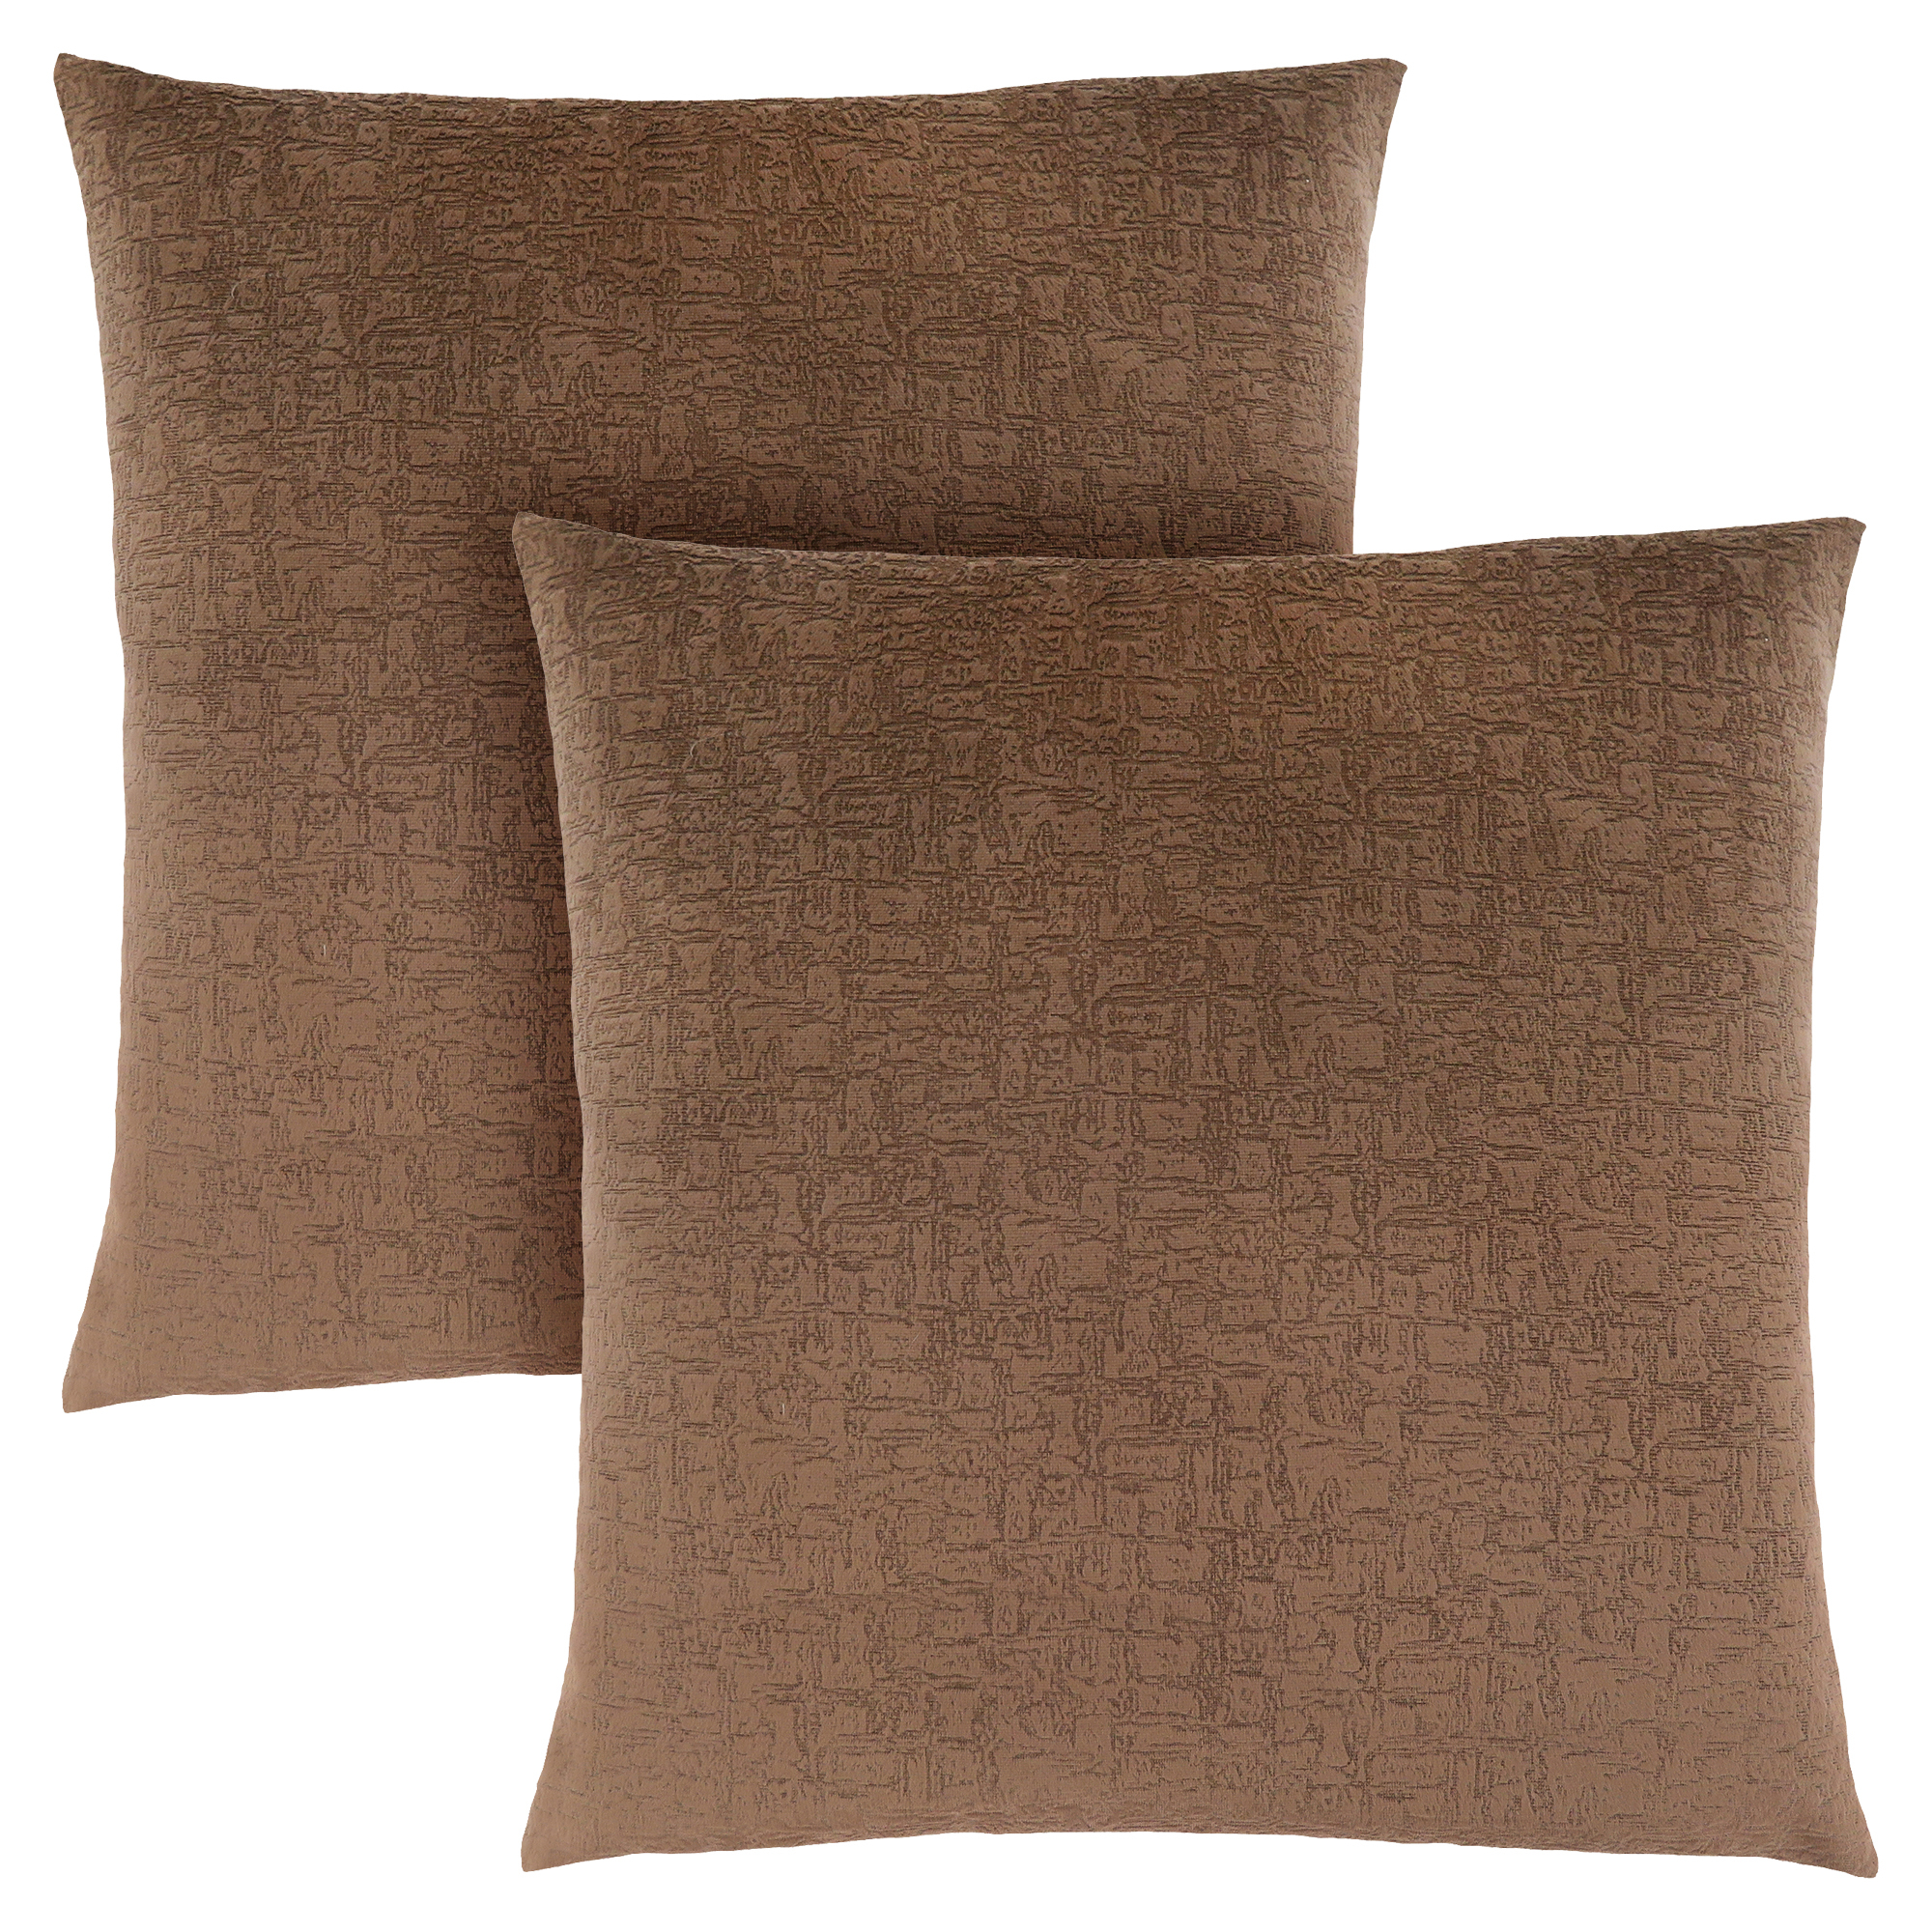 "PILLOW - 18""X 18"" / LIGHT BROWN MOSAIC VELVET / 2PCS"